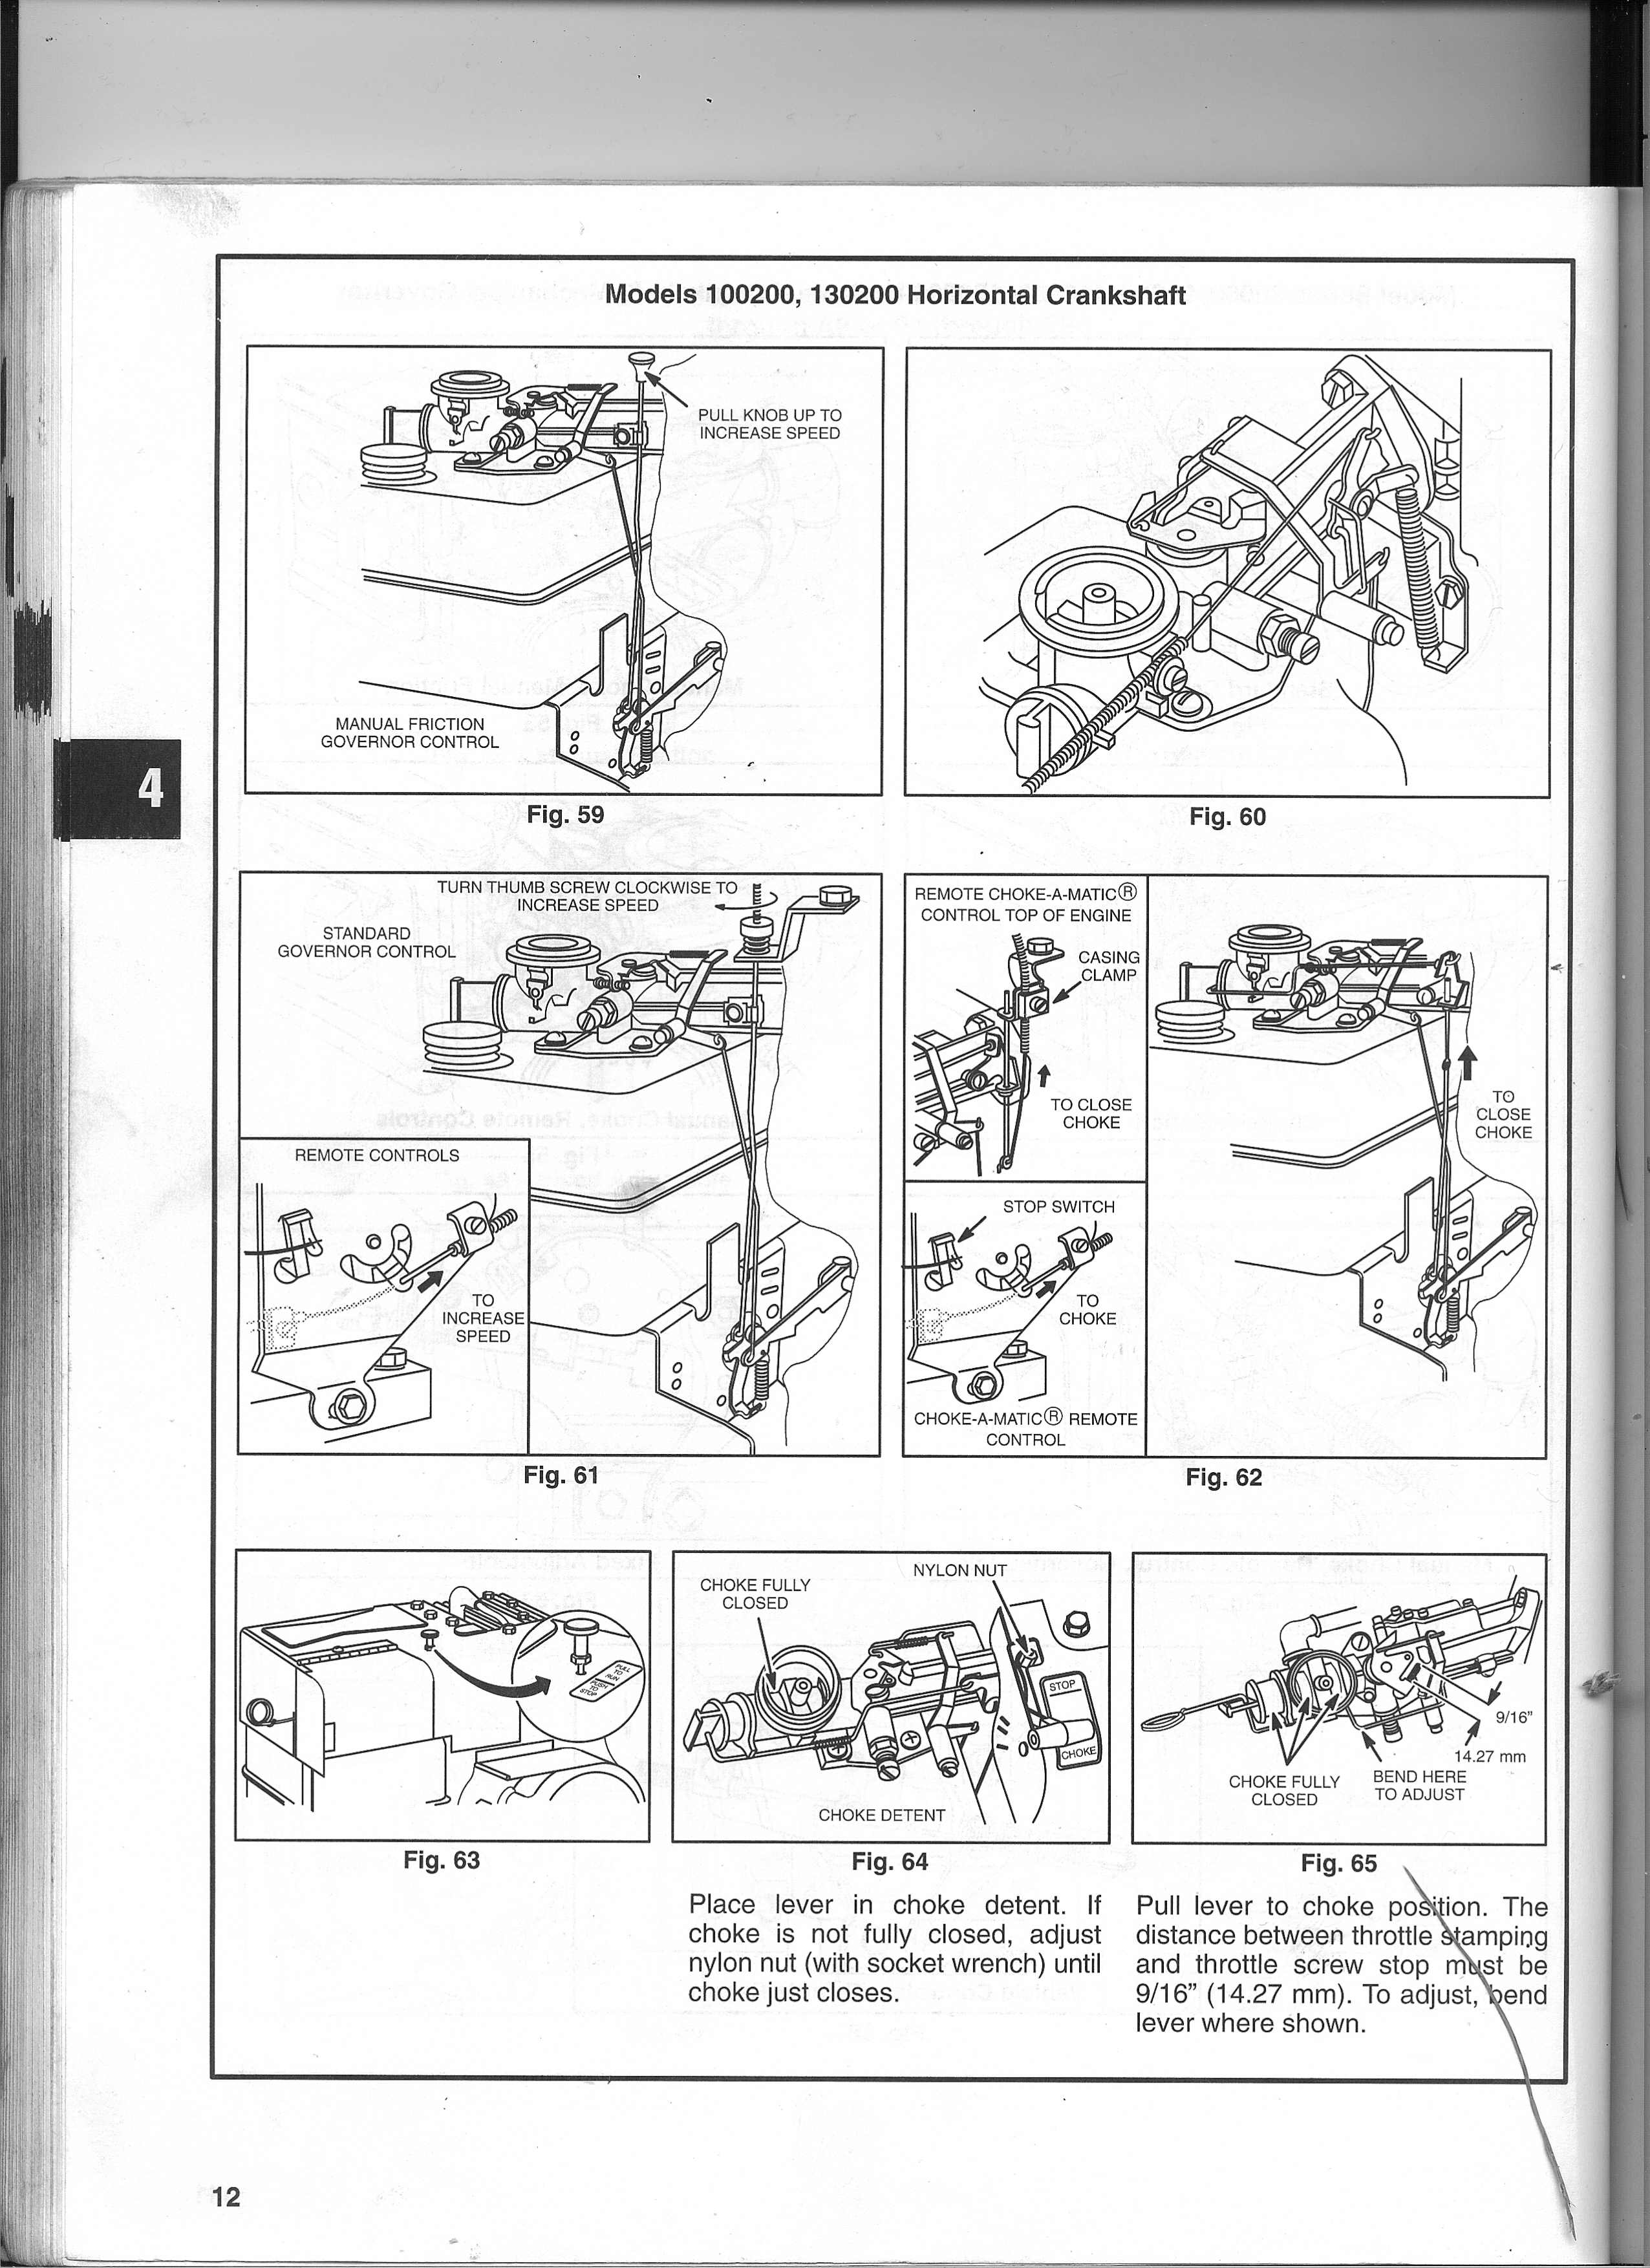 3 hp briggs governor diagram wiring schematic schematic wiring rh arcomics co briggs and stratton throttle linkage diagram 5hp briggs and stratton governor spring diagram